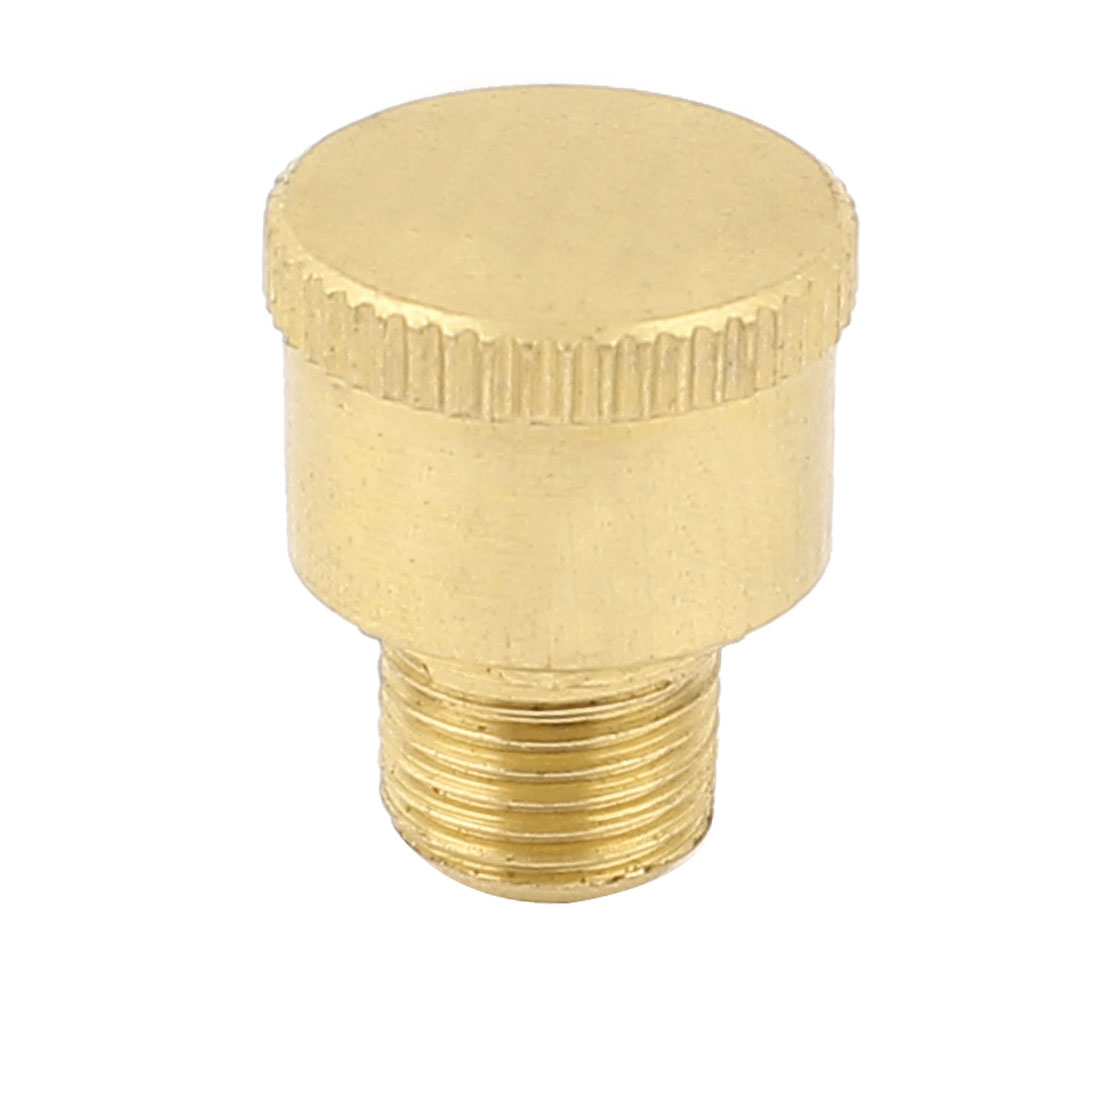 Replacement Oil Lubrication 1/8 BSP Male Thread Grease Cup Cap